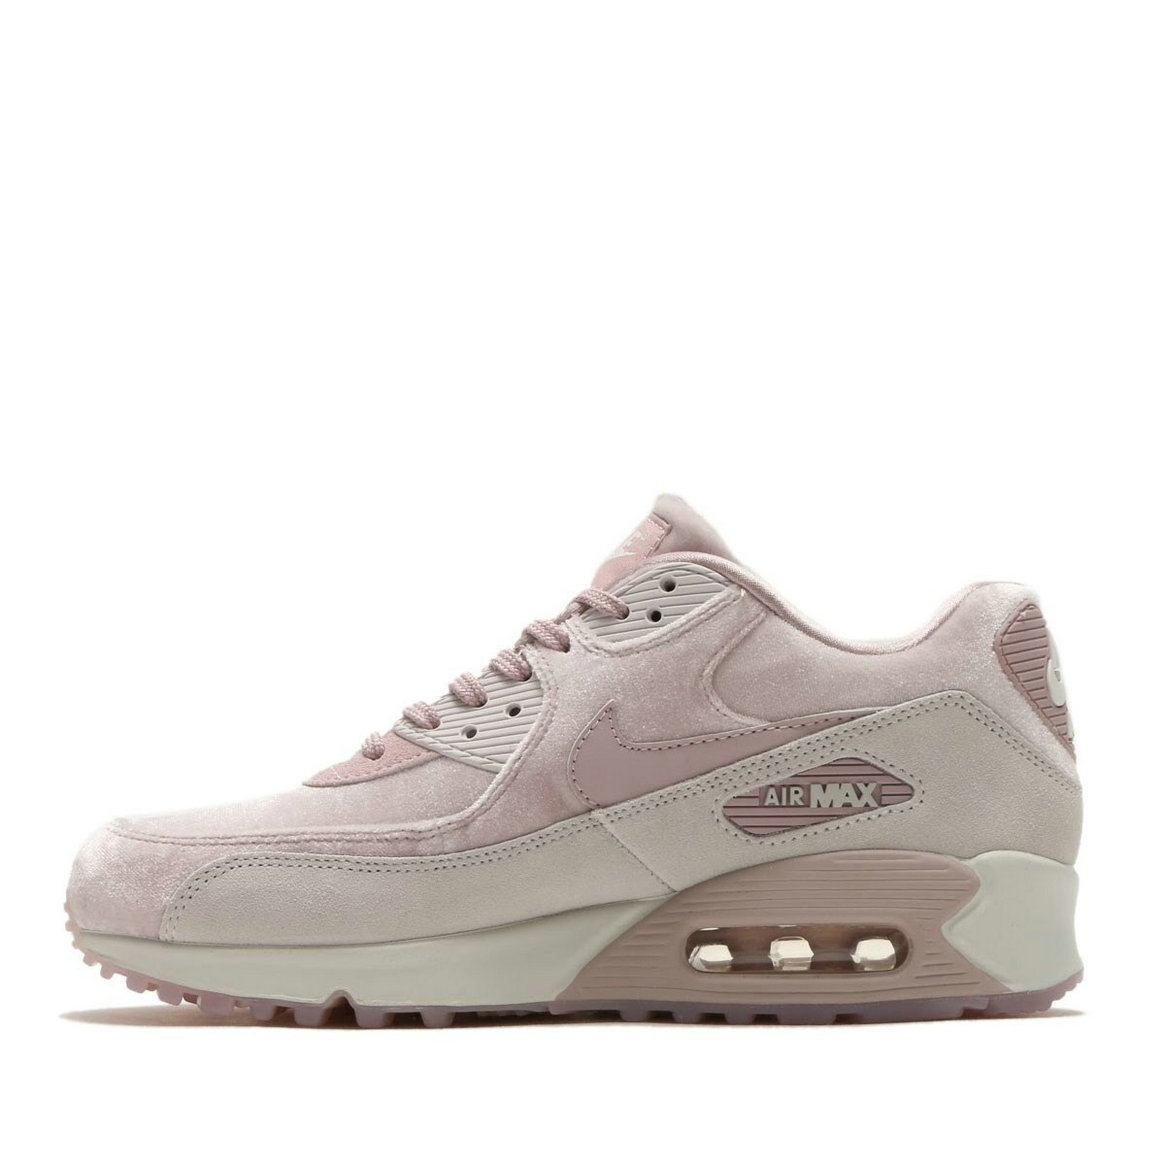 2020 Womens Wholesale Cheap Nike Air Max 90 Lx Particle Rose Particle Rose-Vast Grey 898512-600